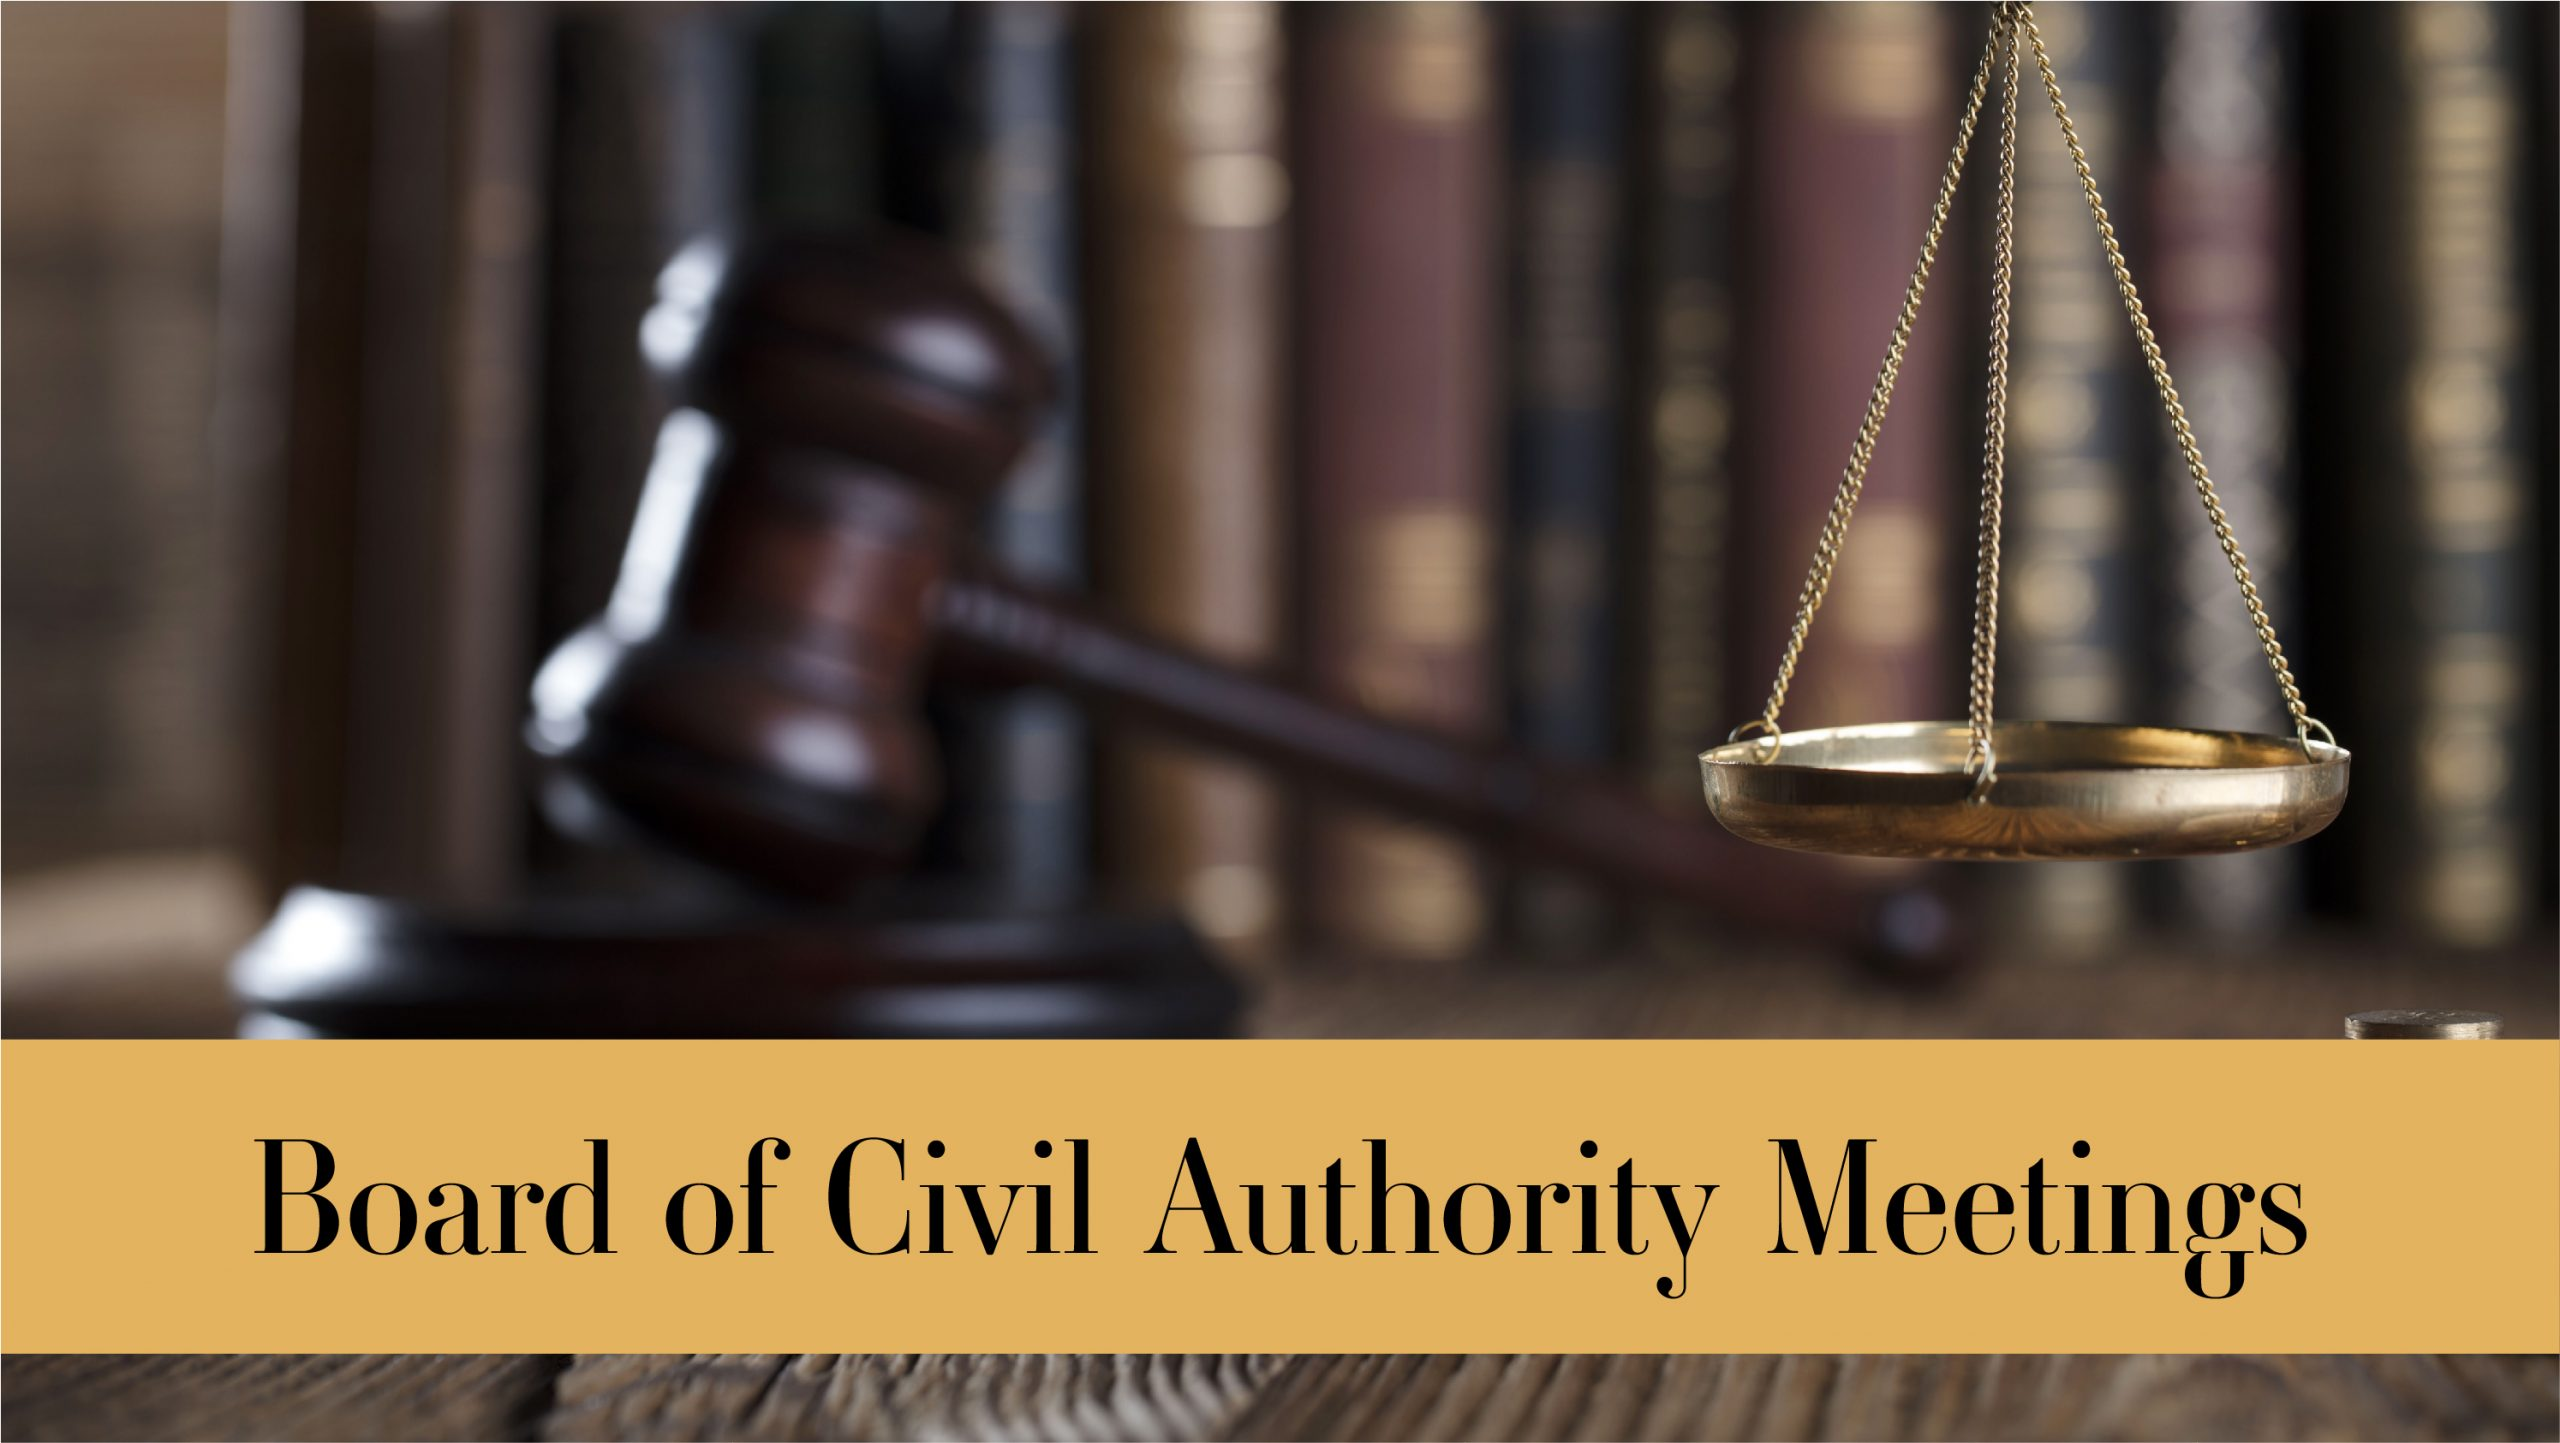 Board of Civil Authority